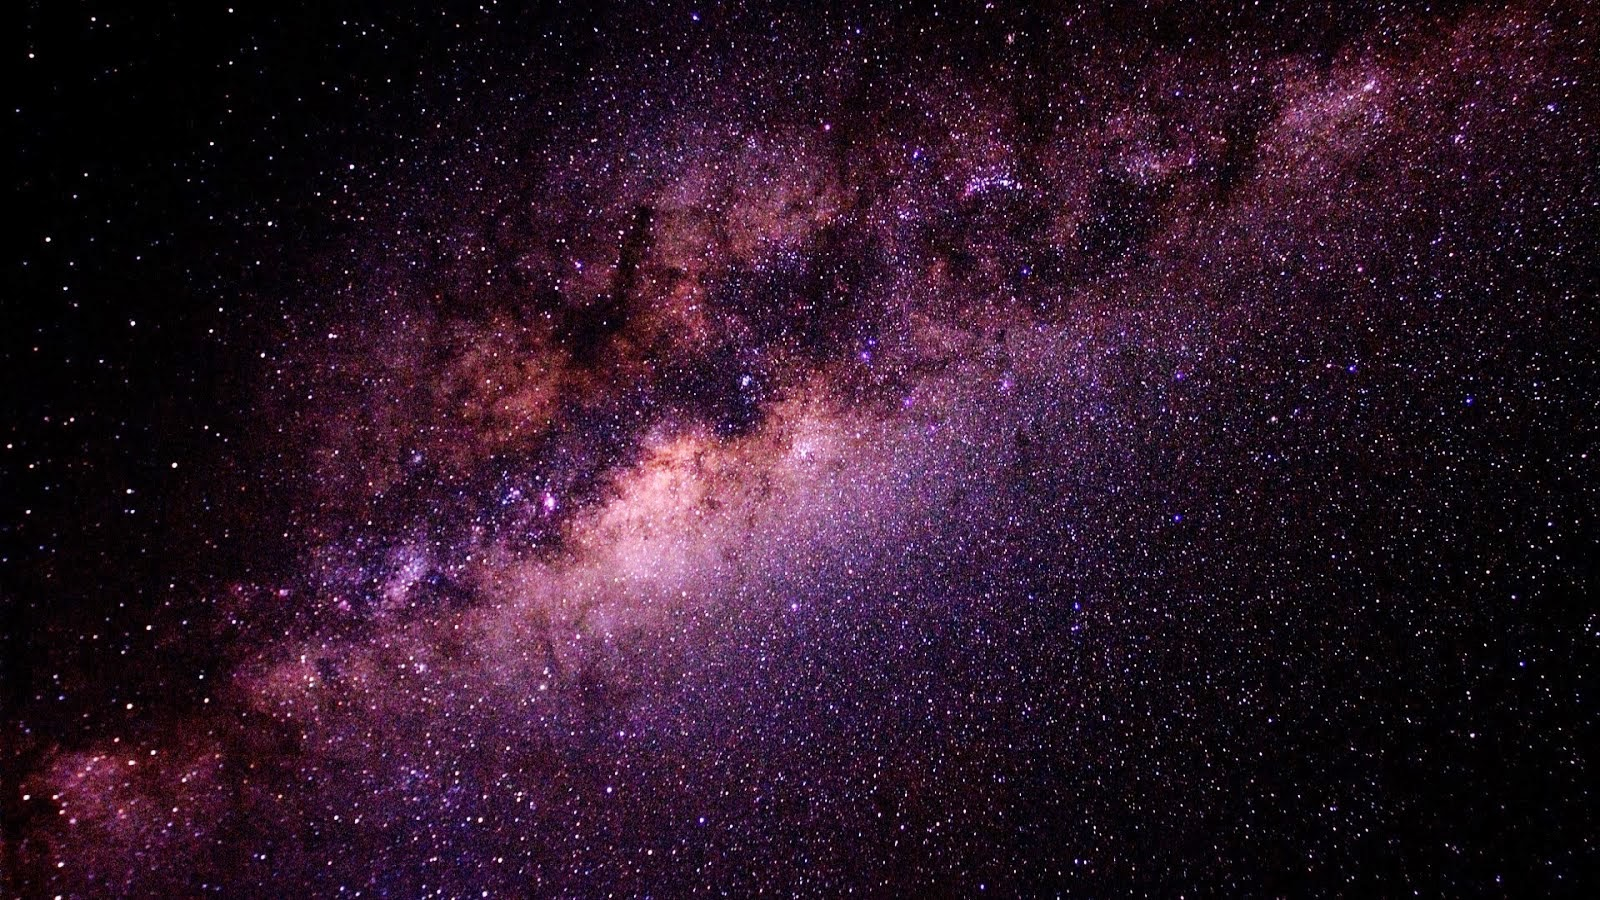 hd wallpapers 1080p space milky way galaxy hd wallpapers 1080p 1600x900